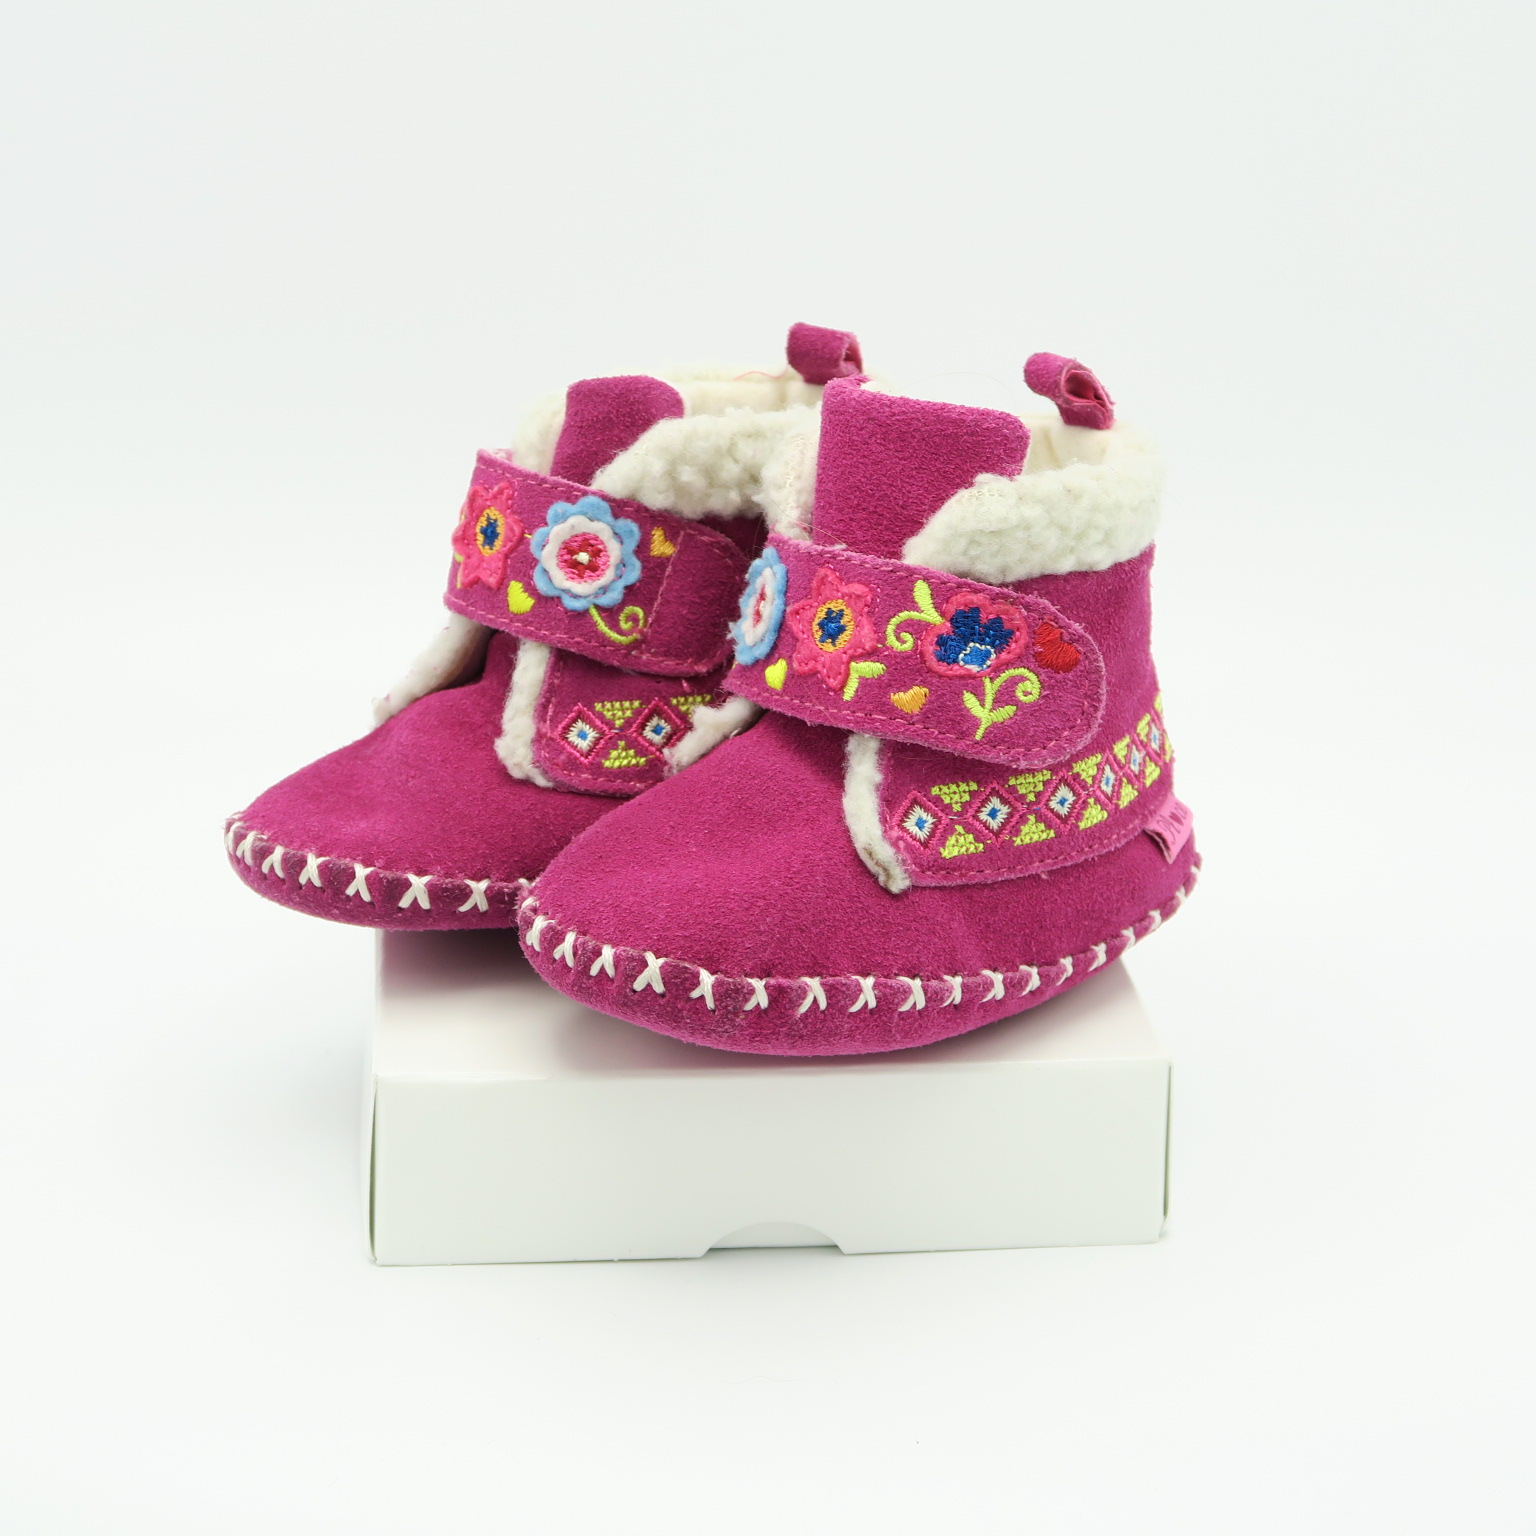 Footwear Shoes Shoes size 6 12 Months Swoondle Society